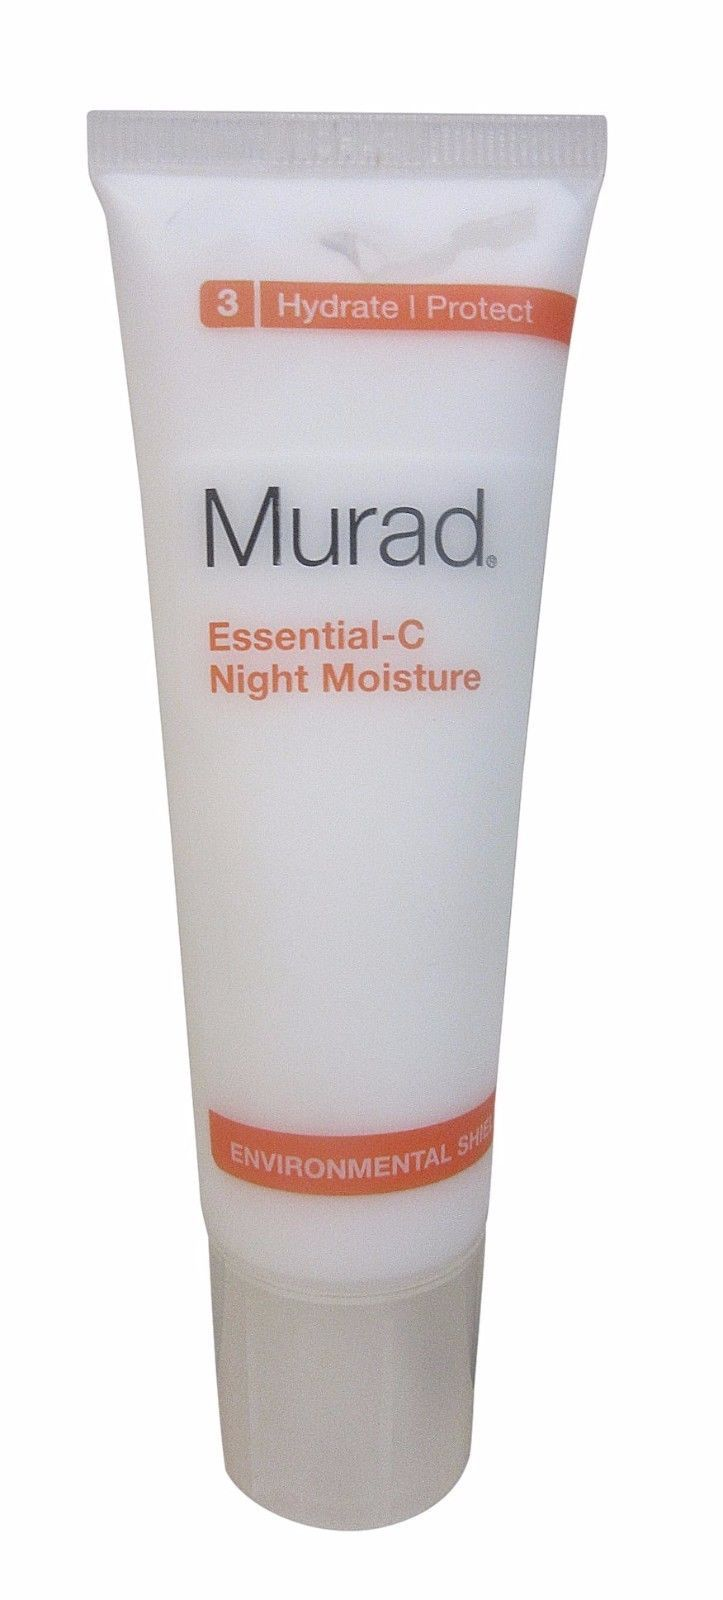 Item specifics    									 			Condition:  												 																	 															  															 															 																New: A brand-new, unused, unopened, undamaged item (including handmade items). See the seller's  																  																		... - #SkinCare https://lastreviews.net/health-beauty/skin-care/murad-essential-c-night-moisture-1-7-oz/